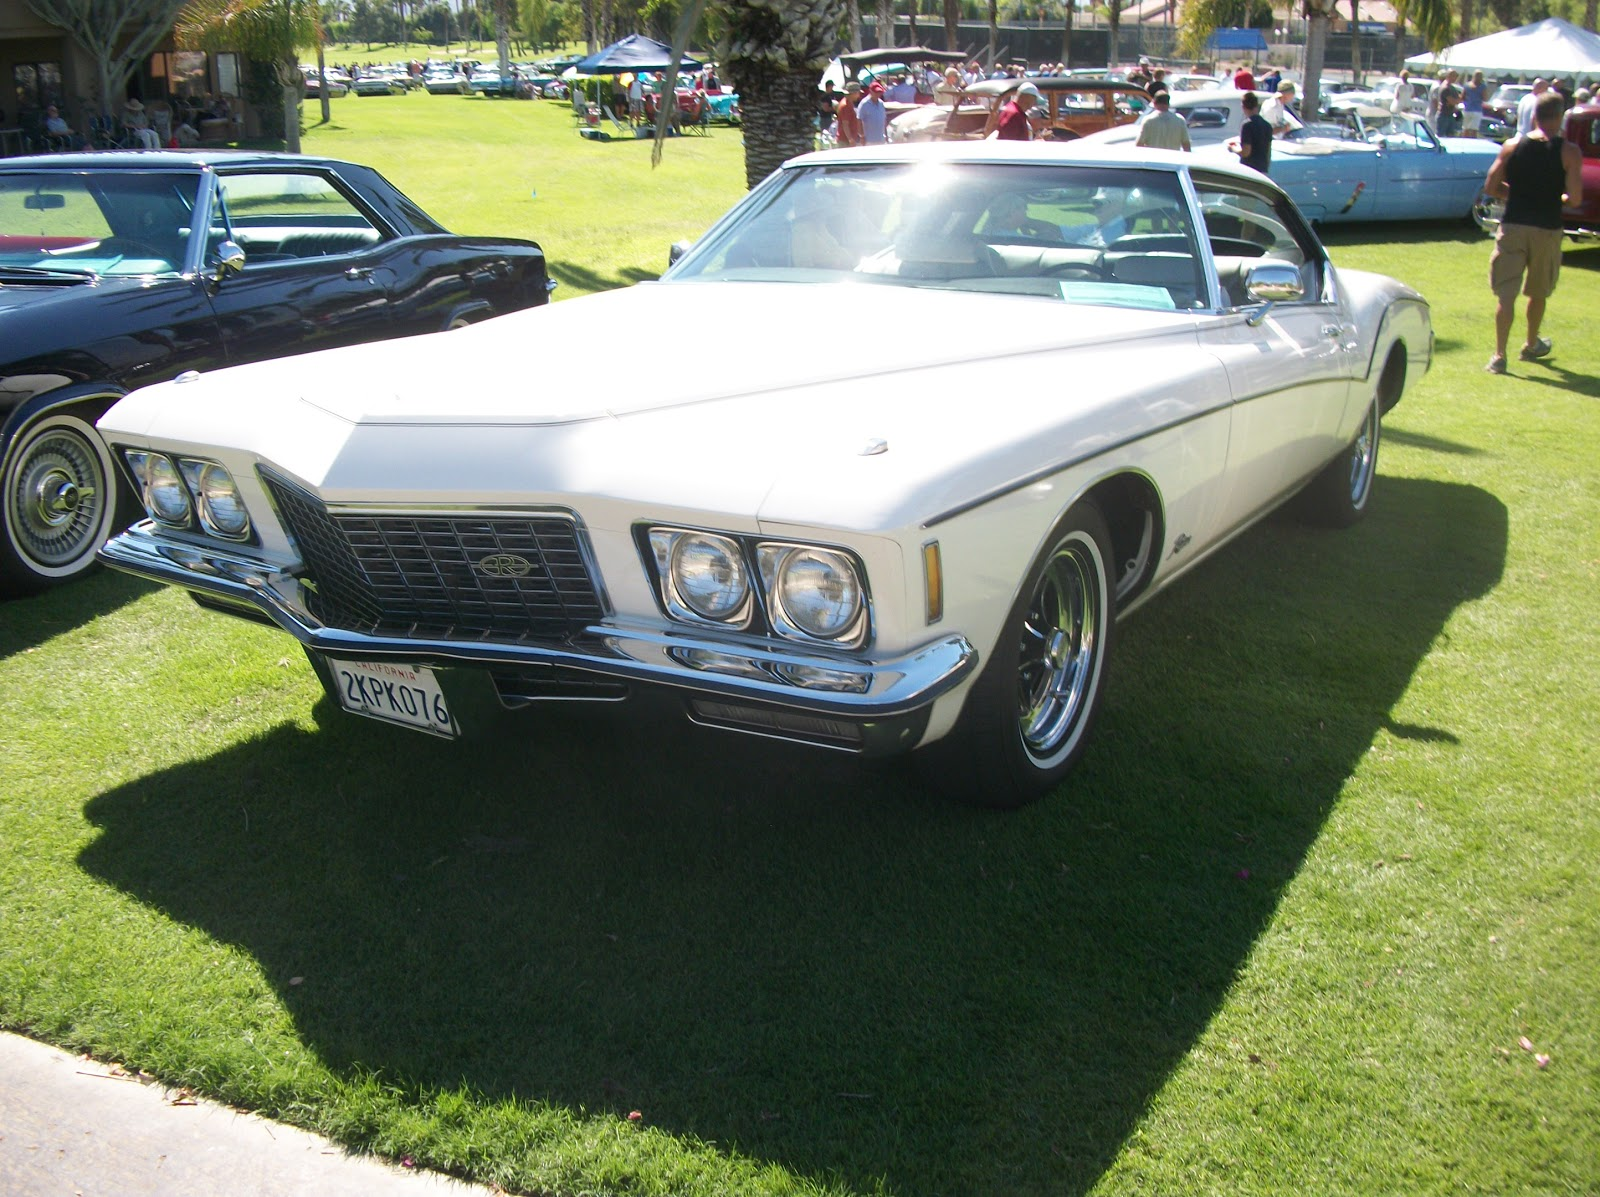 Reynolds Buick GMC Blog Buicks A Beauty At The Casual Concours - Palm springs car show